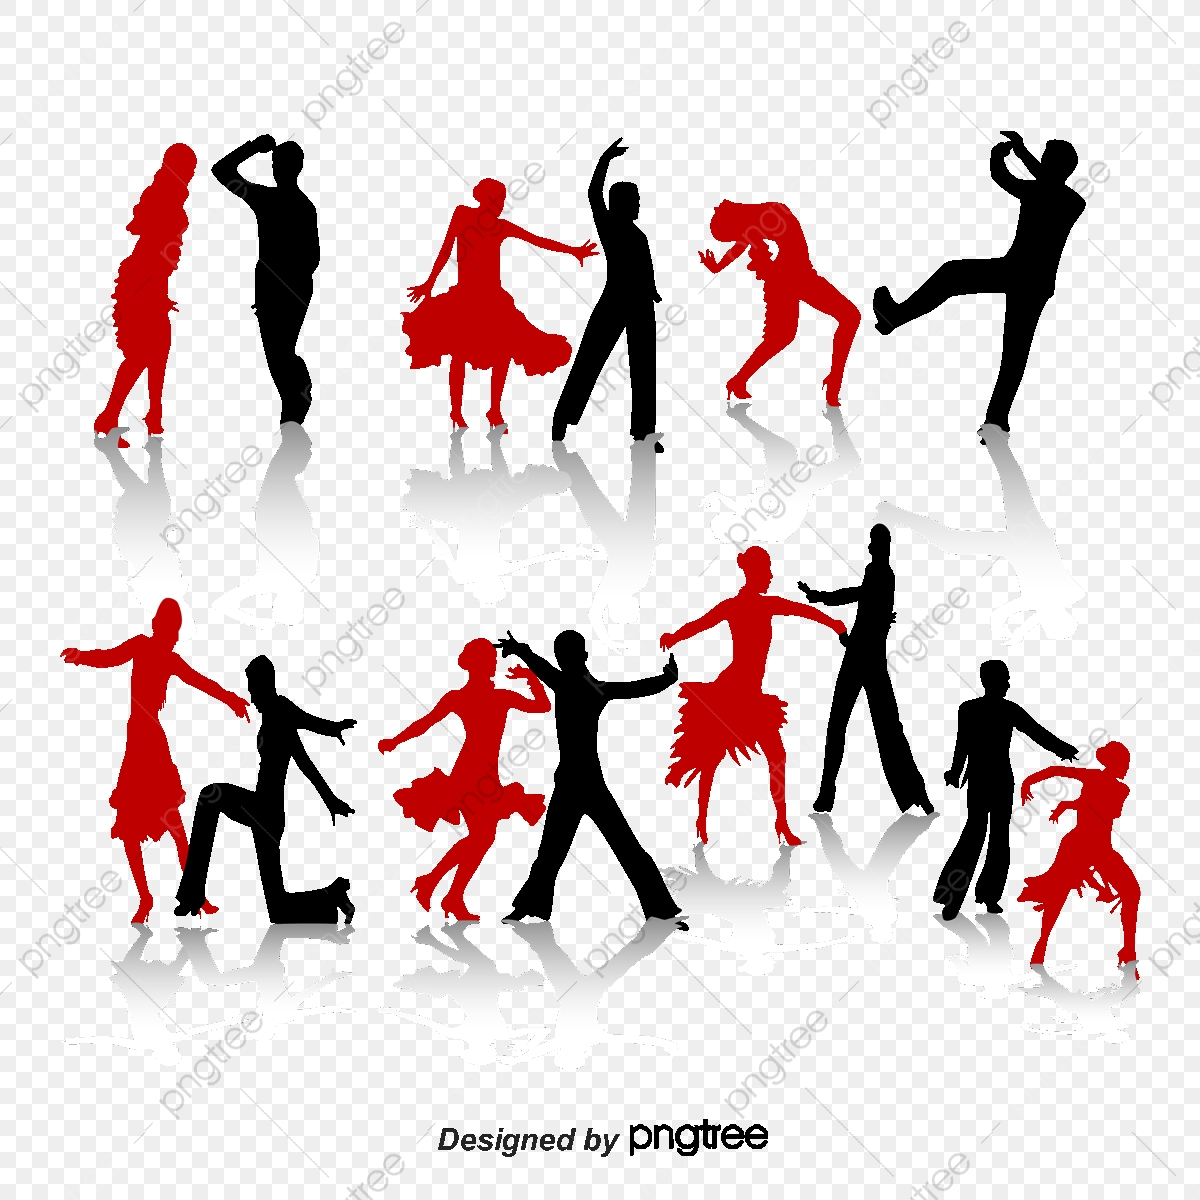 Ballroom Dance Action Figures Silhouette Vector Material Ballroom Dancing Action Dance Png Transparent Clipart Image And Psd File For Free Download